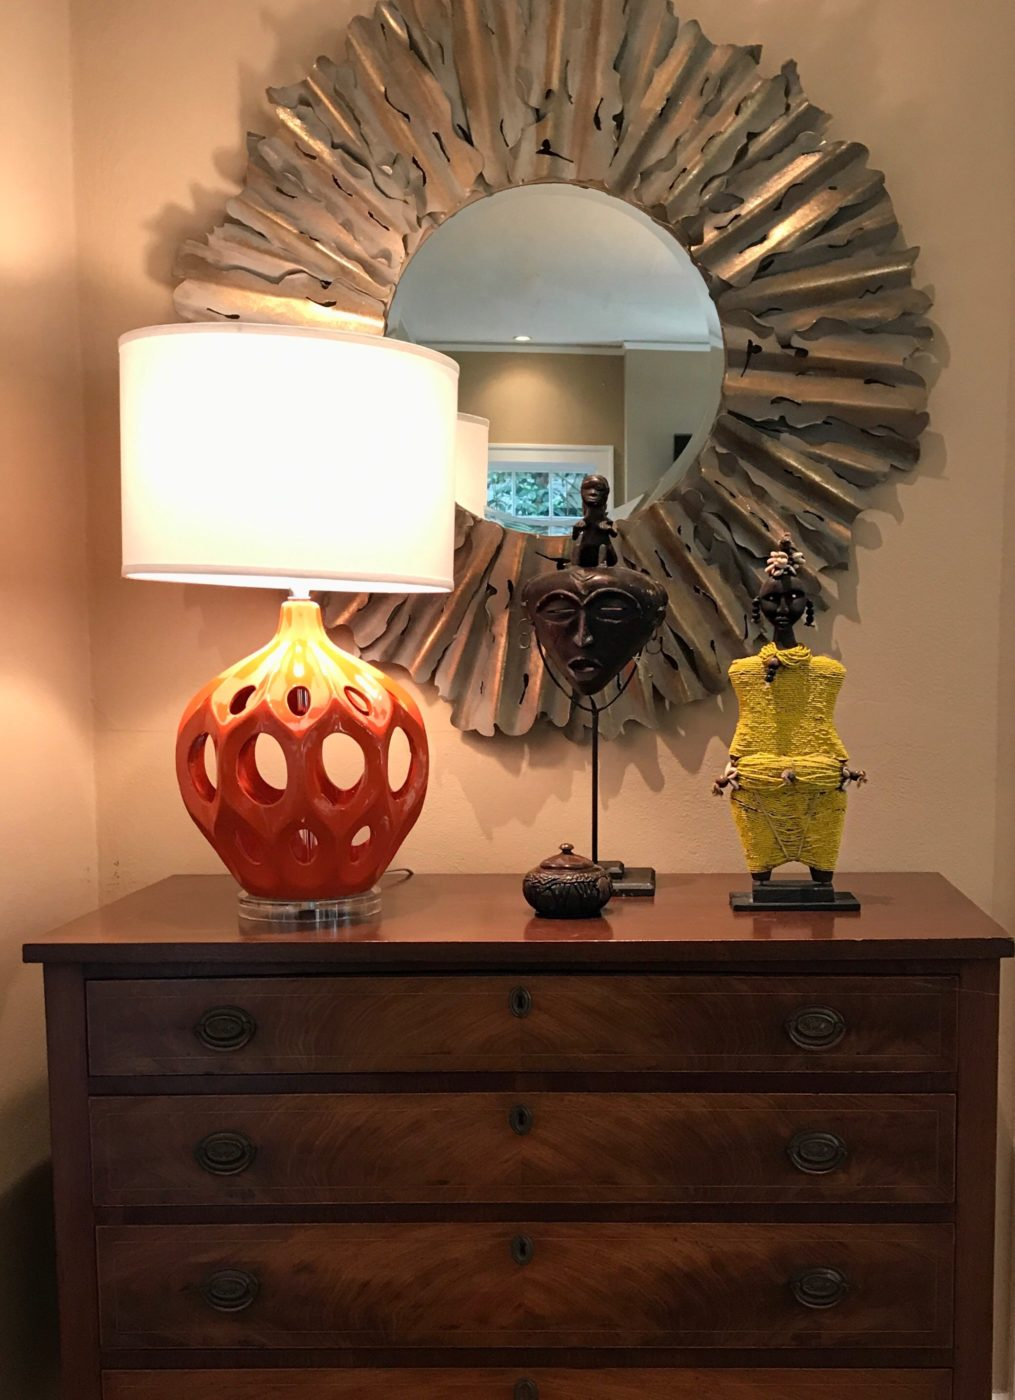 Antique chest used to display homeowners collection of African sculptures coupled with a round mirror and lamp.